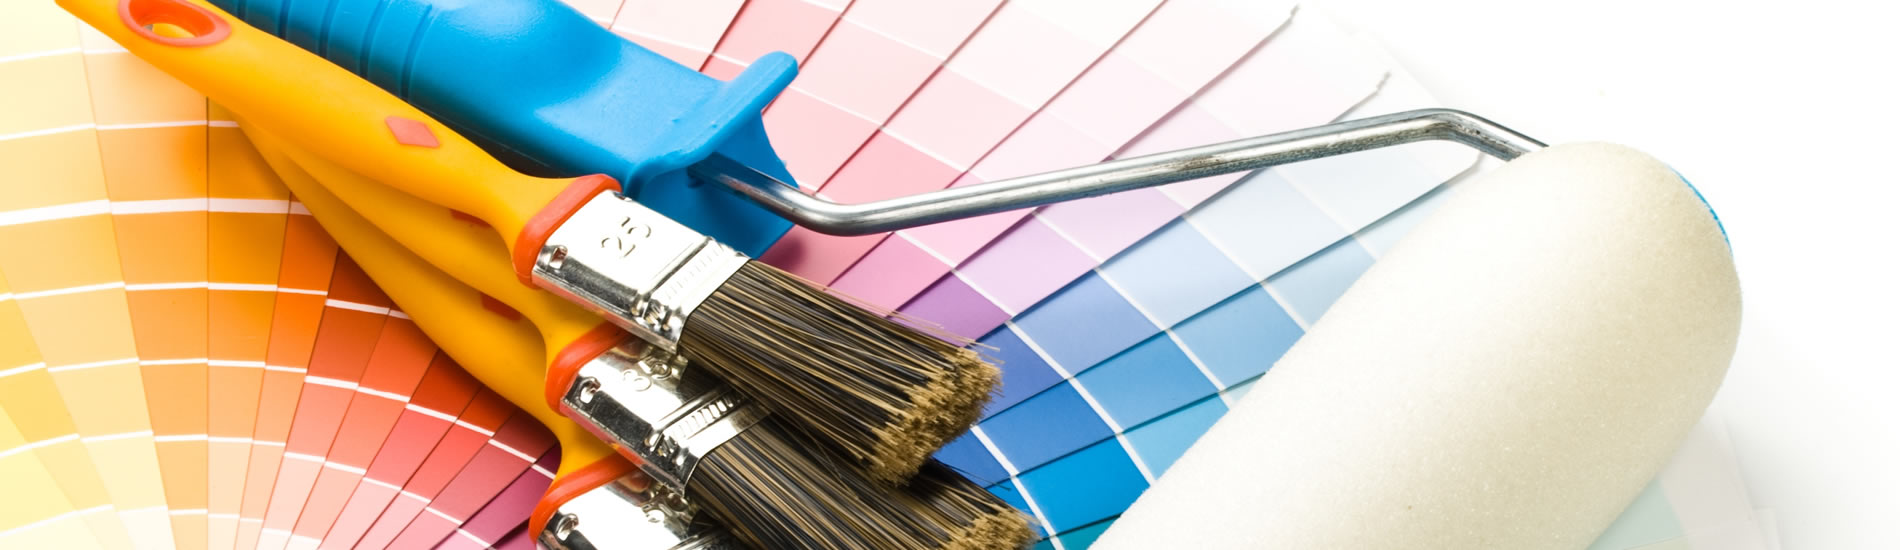 Why hire professional commercial painters